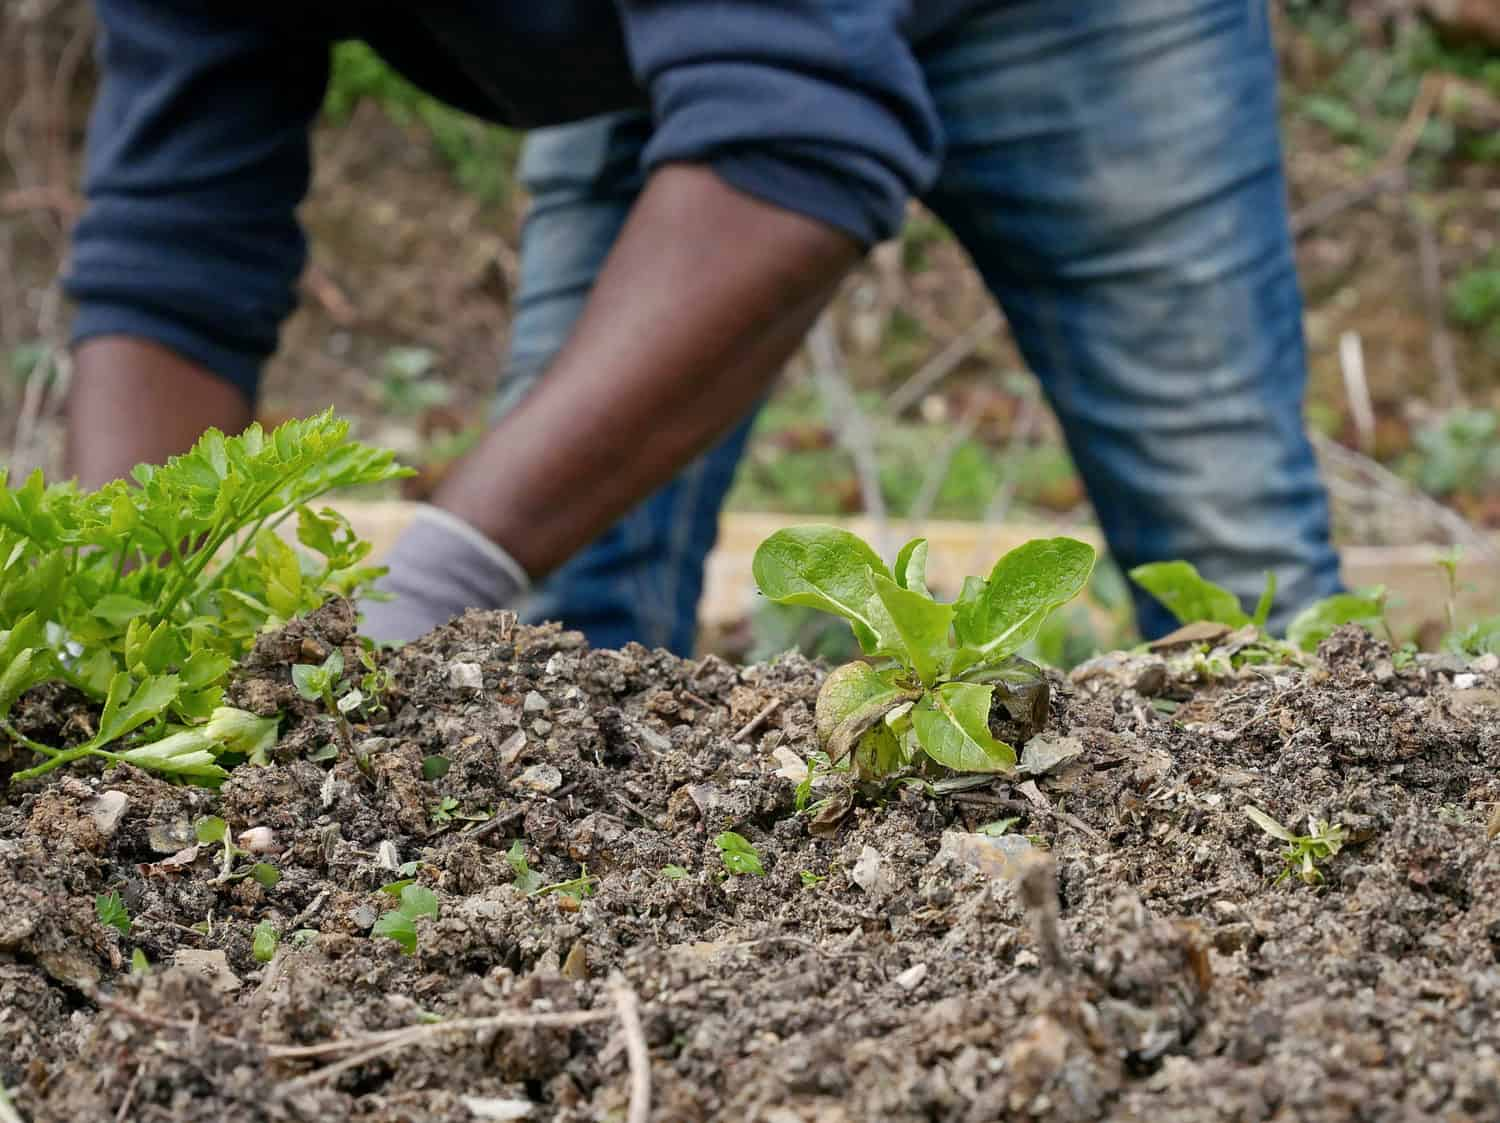 TLU SA Young Farmer of the Year entries close today, so enter while you can. Photo: Food For Mzansi Library